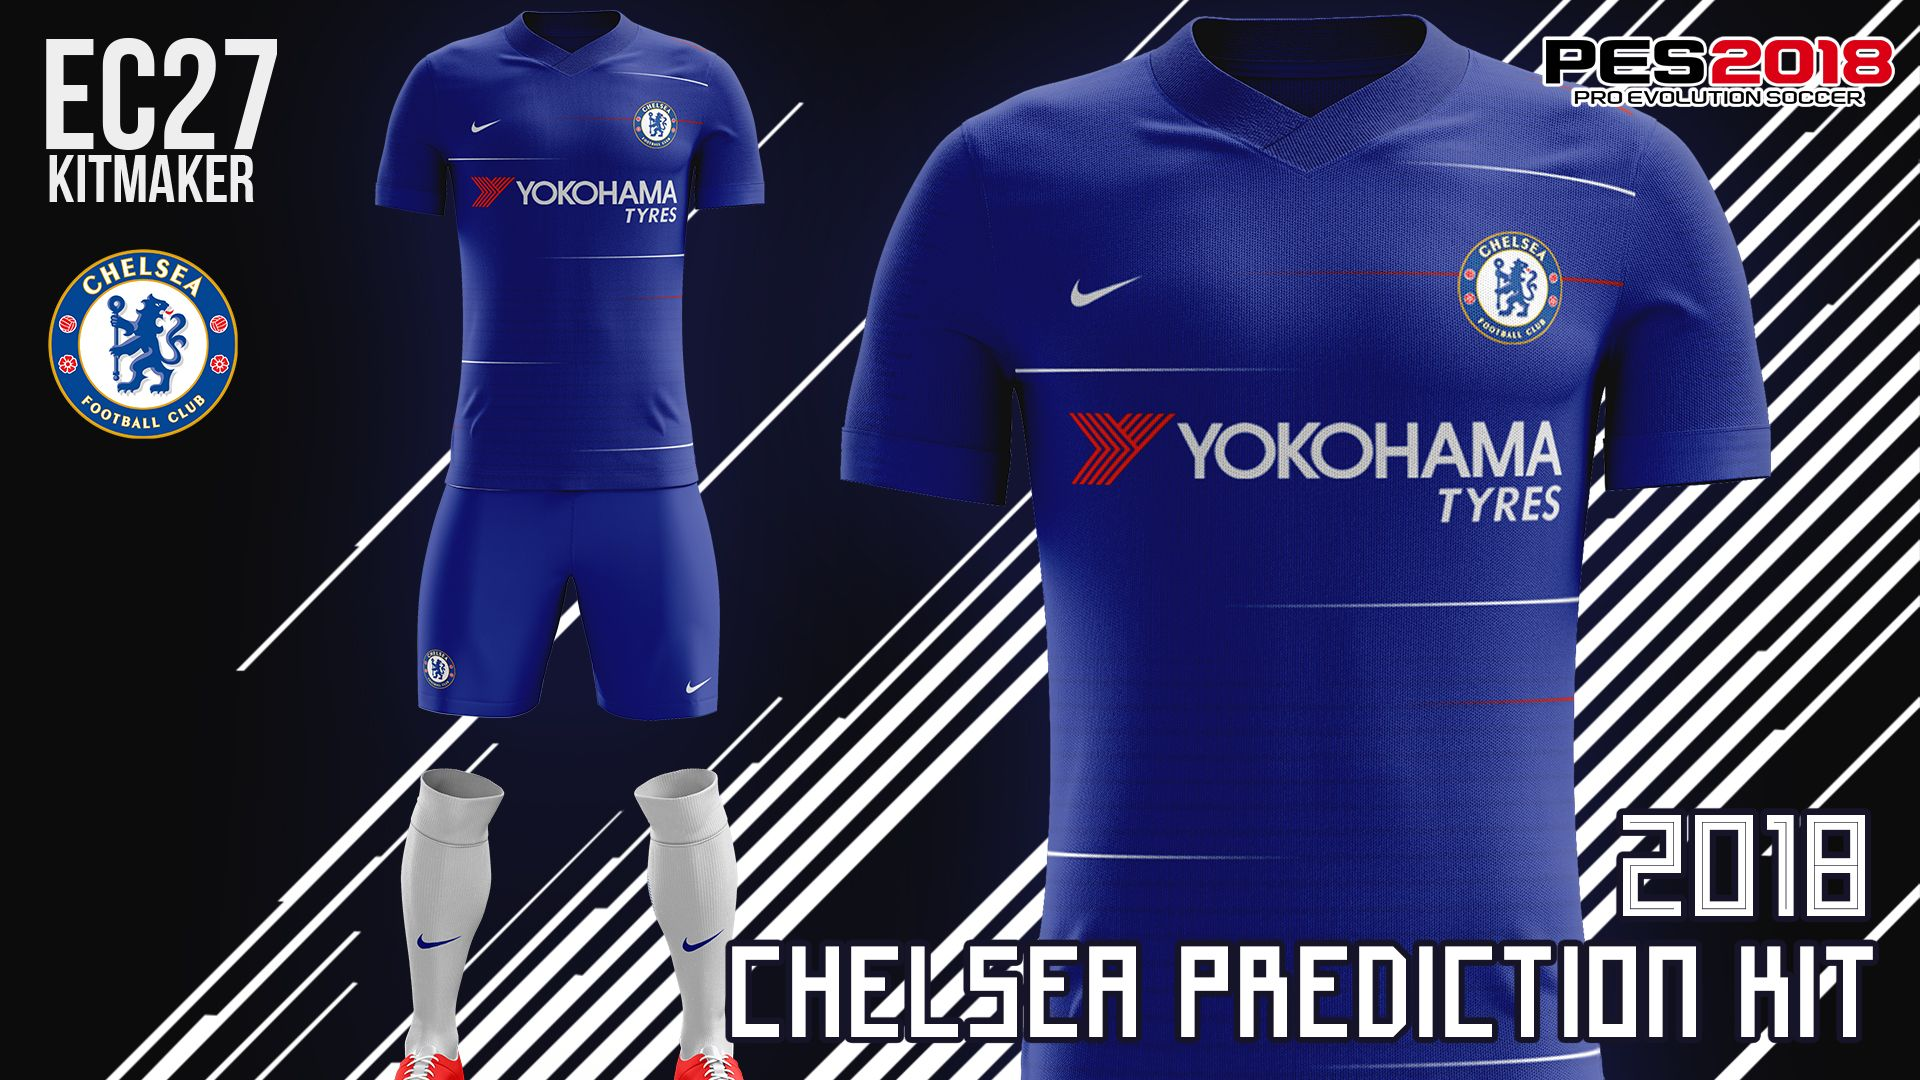 a016ae802 Image result for chelsea kit 2019